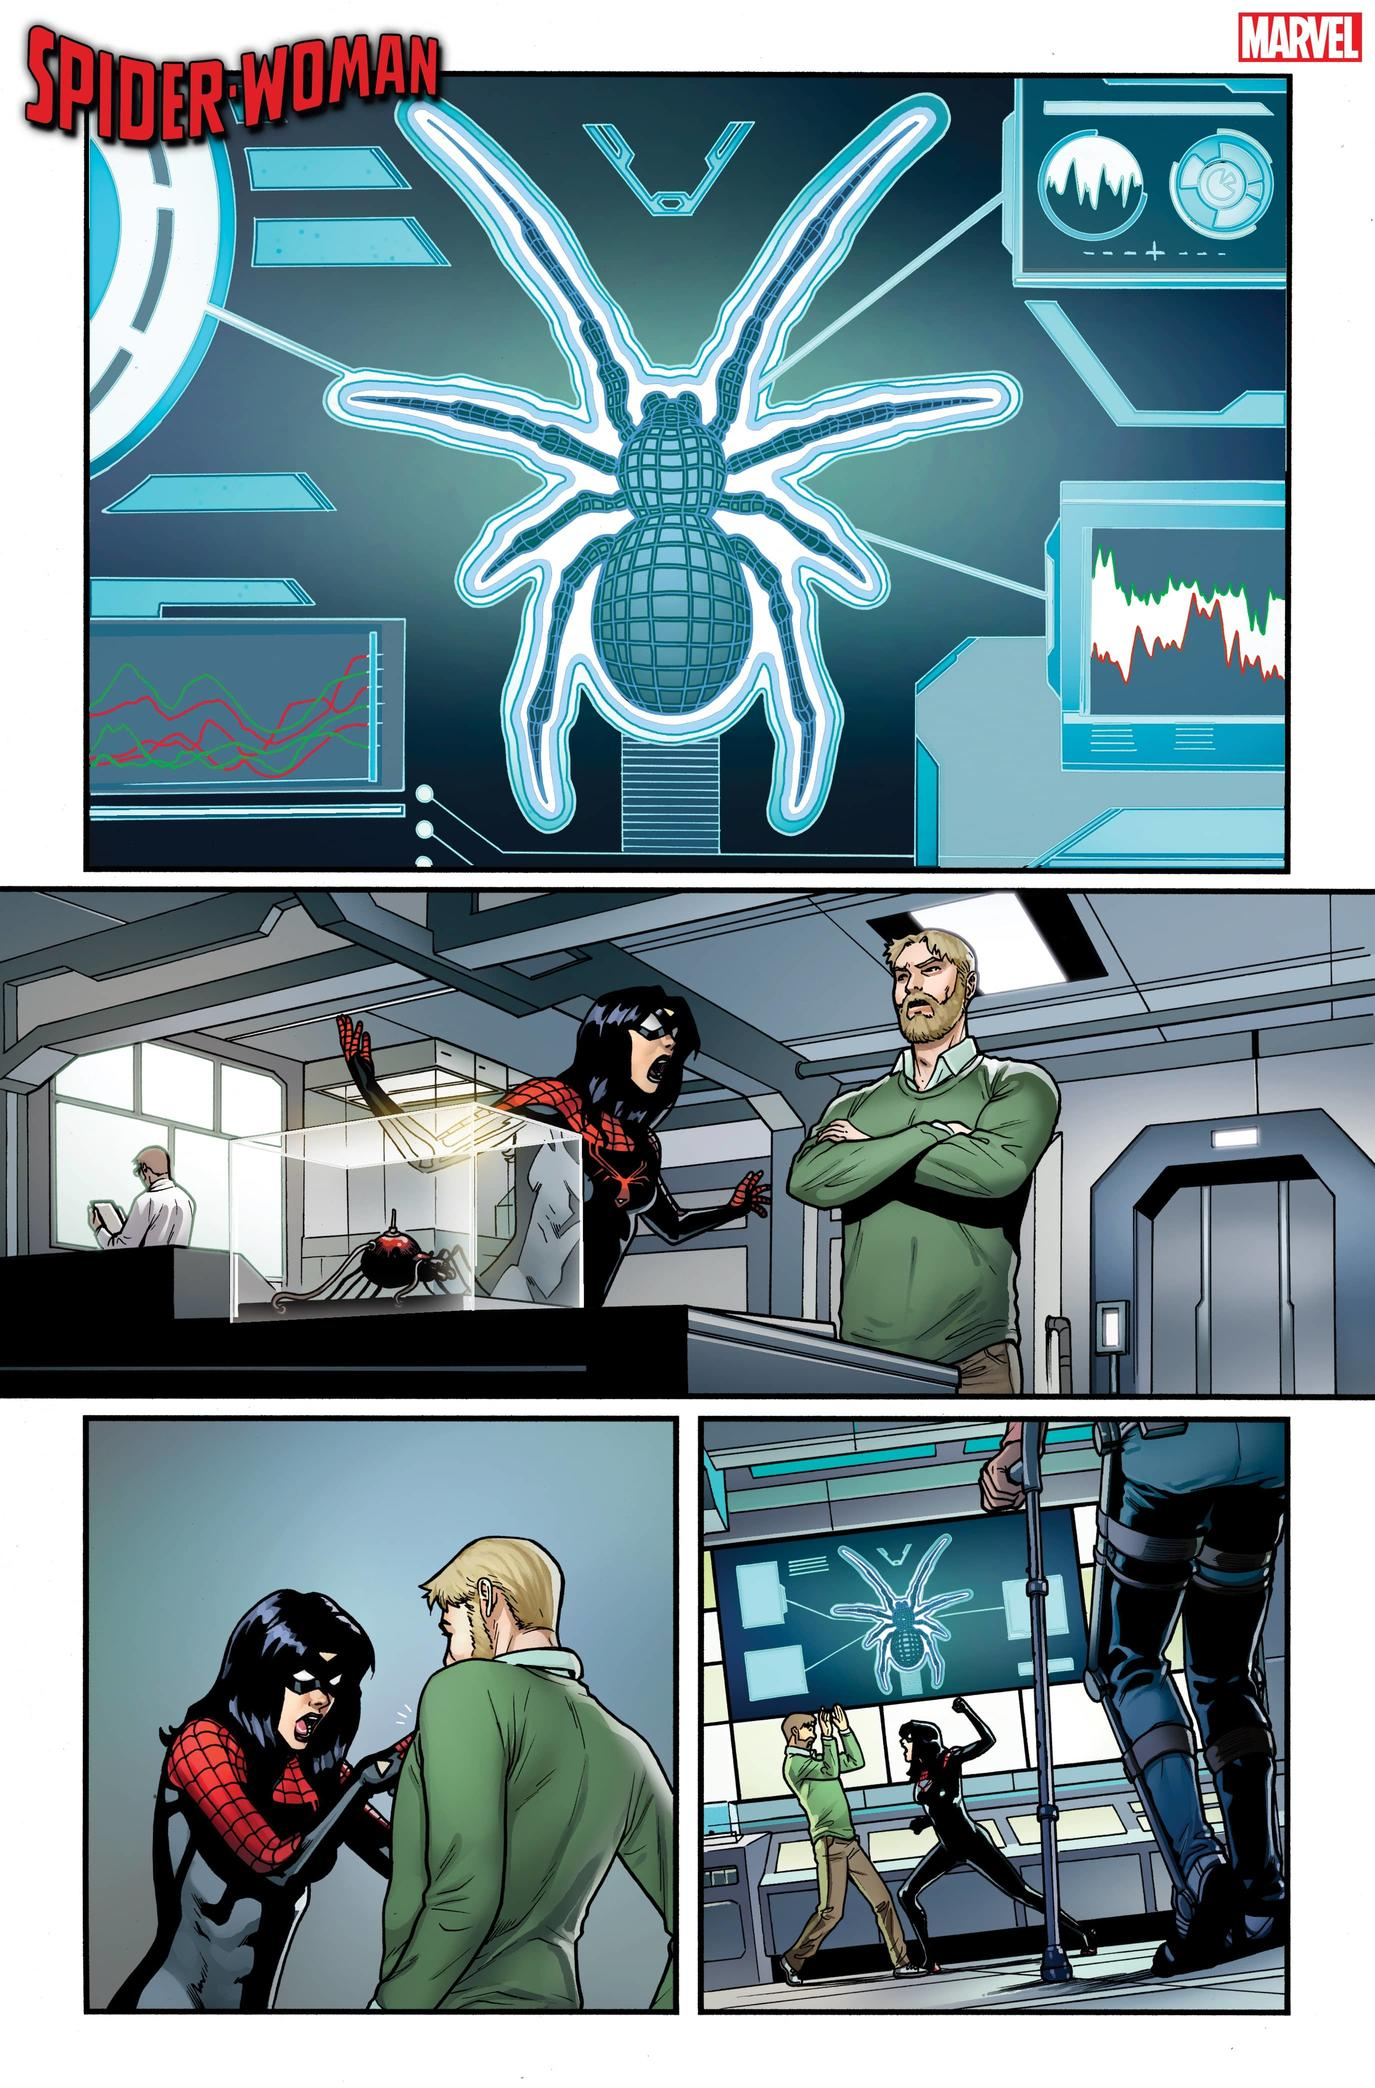 SPIDER-WOMAN #3 preview interiors by Pere Pérez with colors by Frank D'Armata